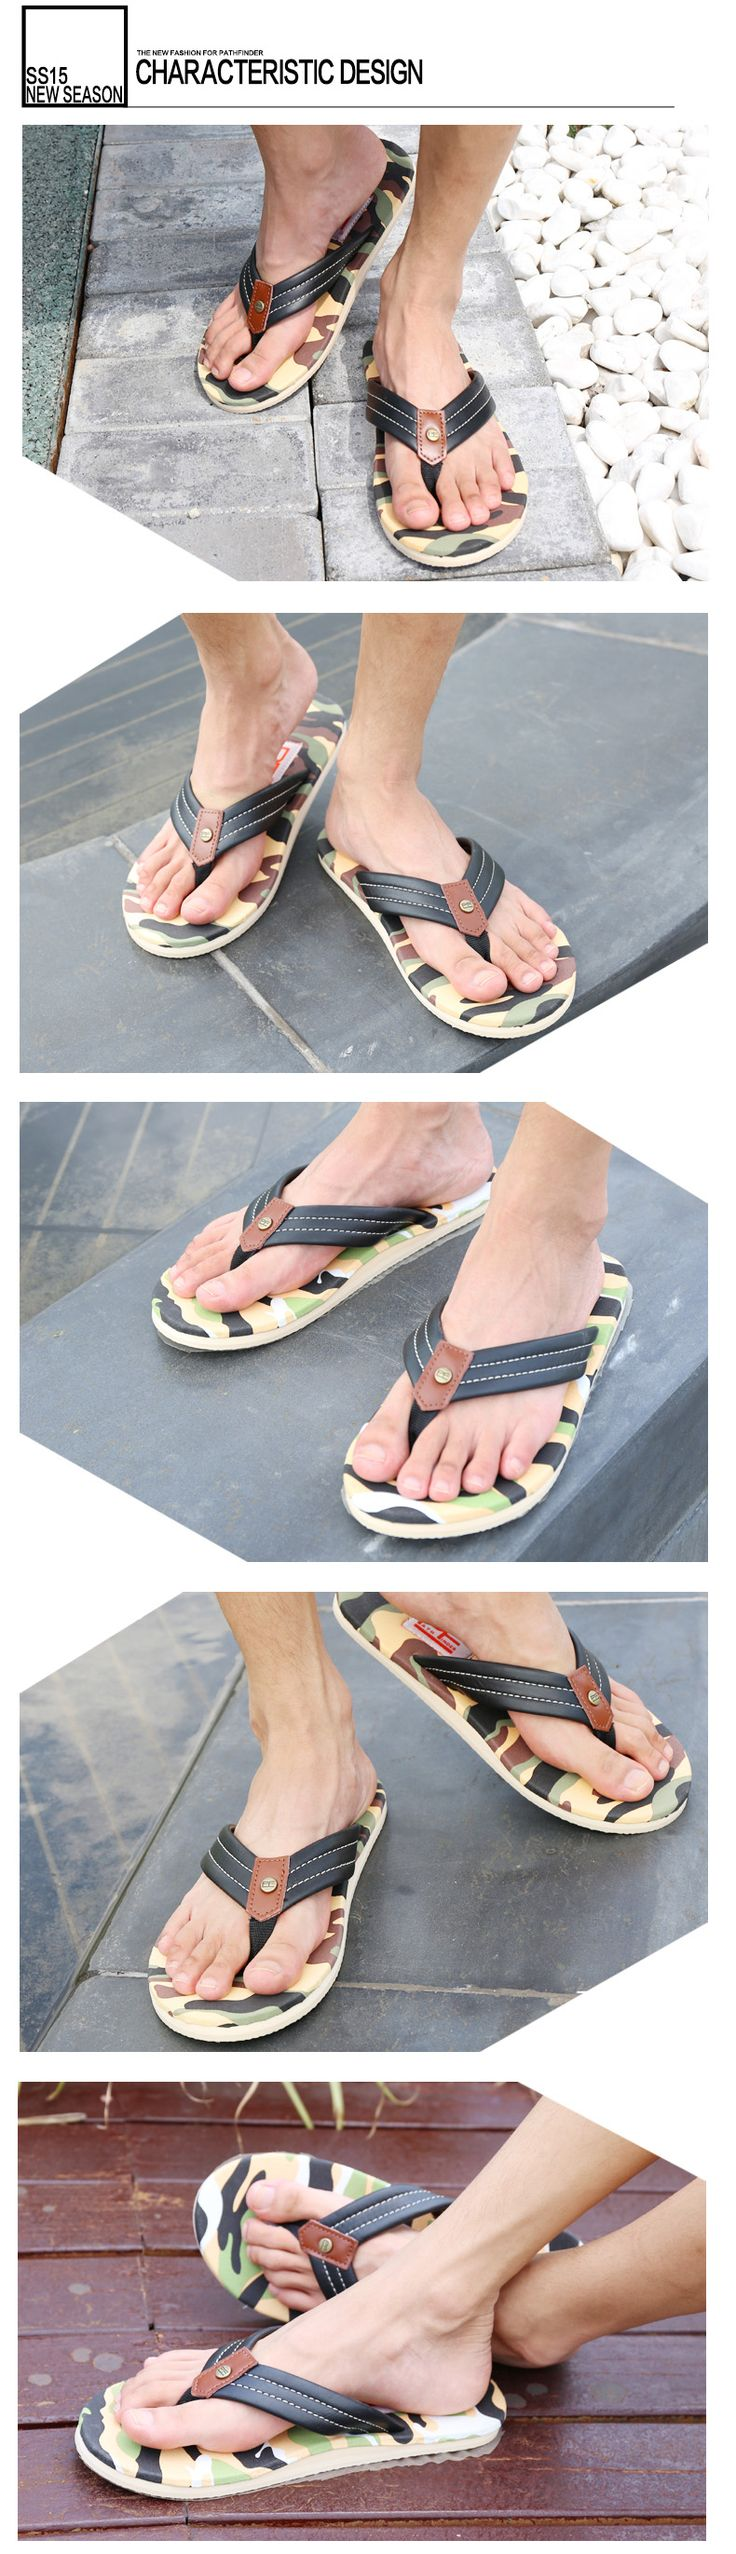 Aliexpress.com : Buy Pathfinder Durable Mens Summer Walking Flip Flops Non Slip Men's Comfortable Flat Beach Slippers Sandals Sandalias Hombre 2016 from Reliable slipper house suppliers on Pathfinder PathFinder store